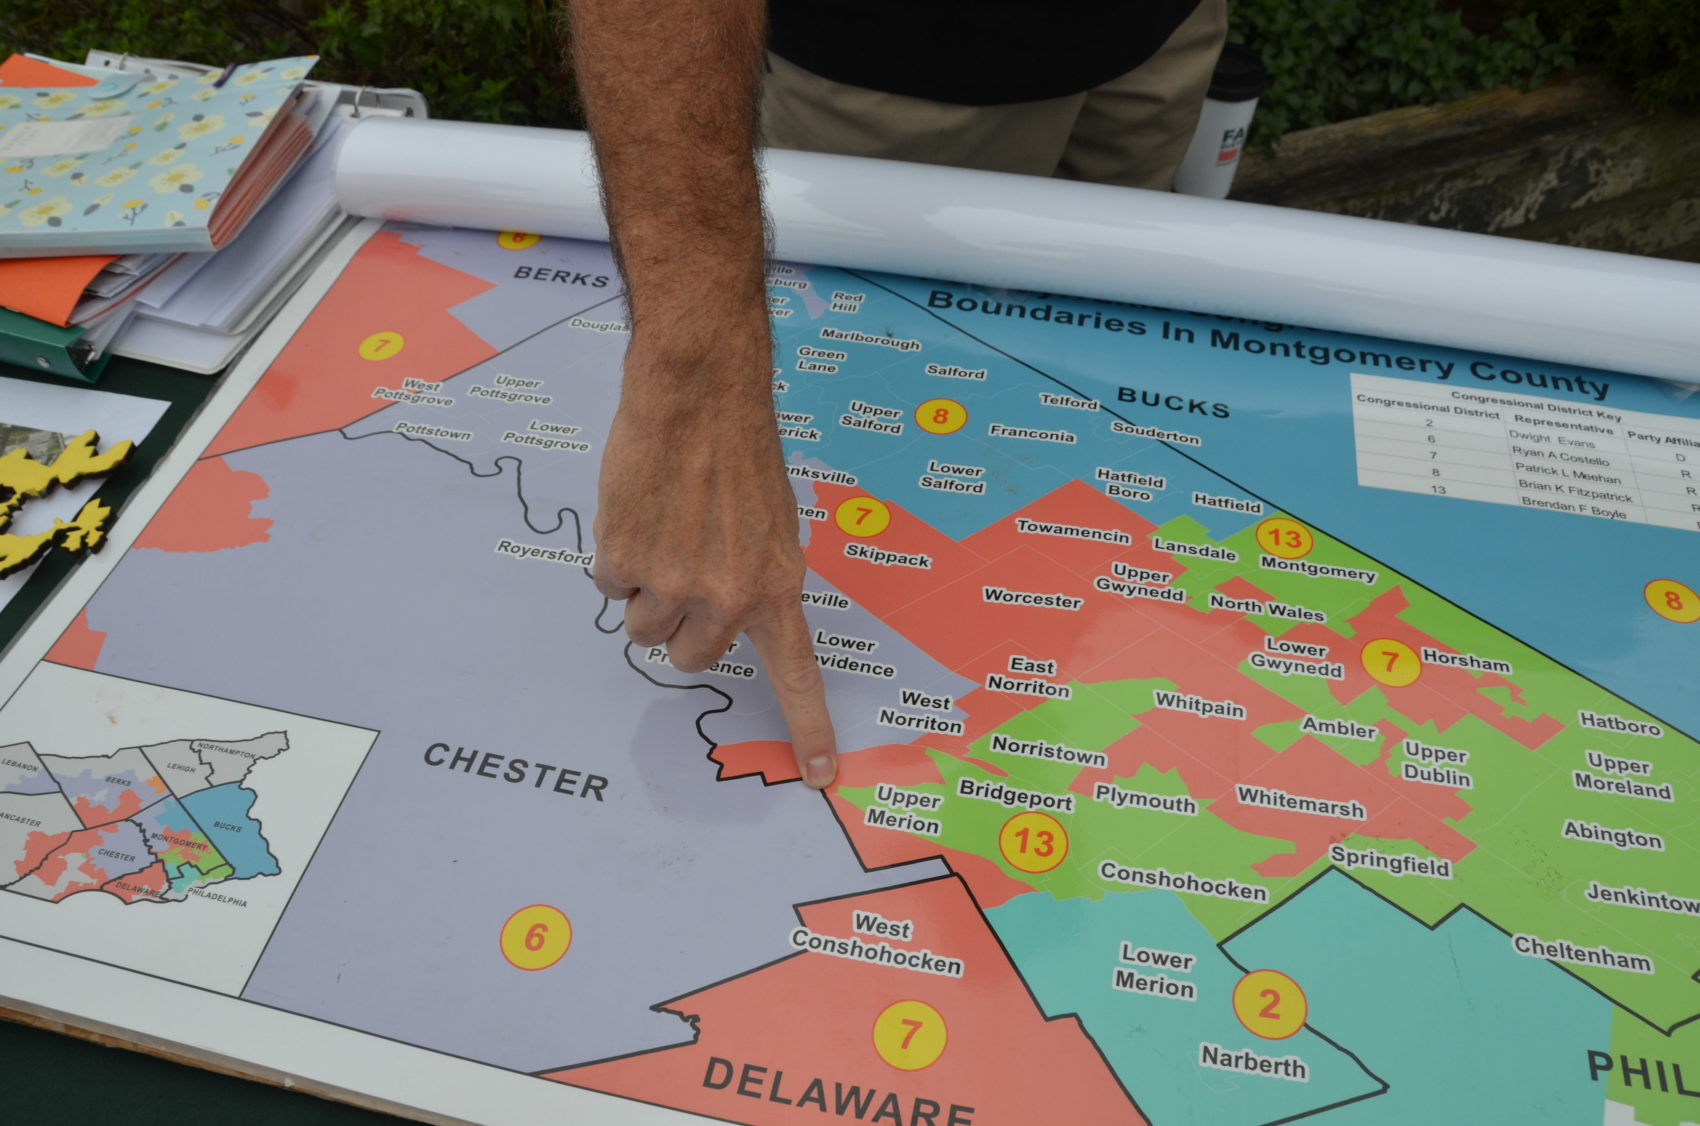 Fair Districts PA organizer Rich Rafferty points to a spot in the old PA-07 in Montgomery County. The district was just as wide as a restaurant parking lot at that point on the map. The old PA-07 was considered a poster child for gerrymandering. (Alex Schroeder/On Point)